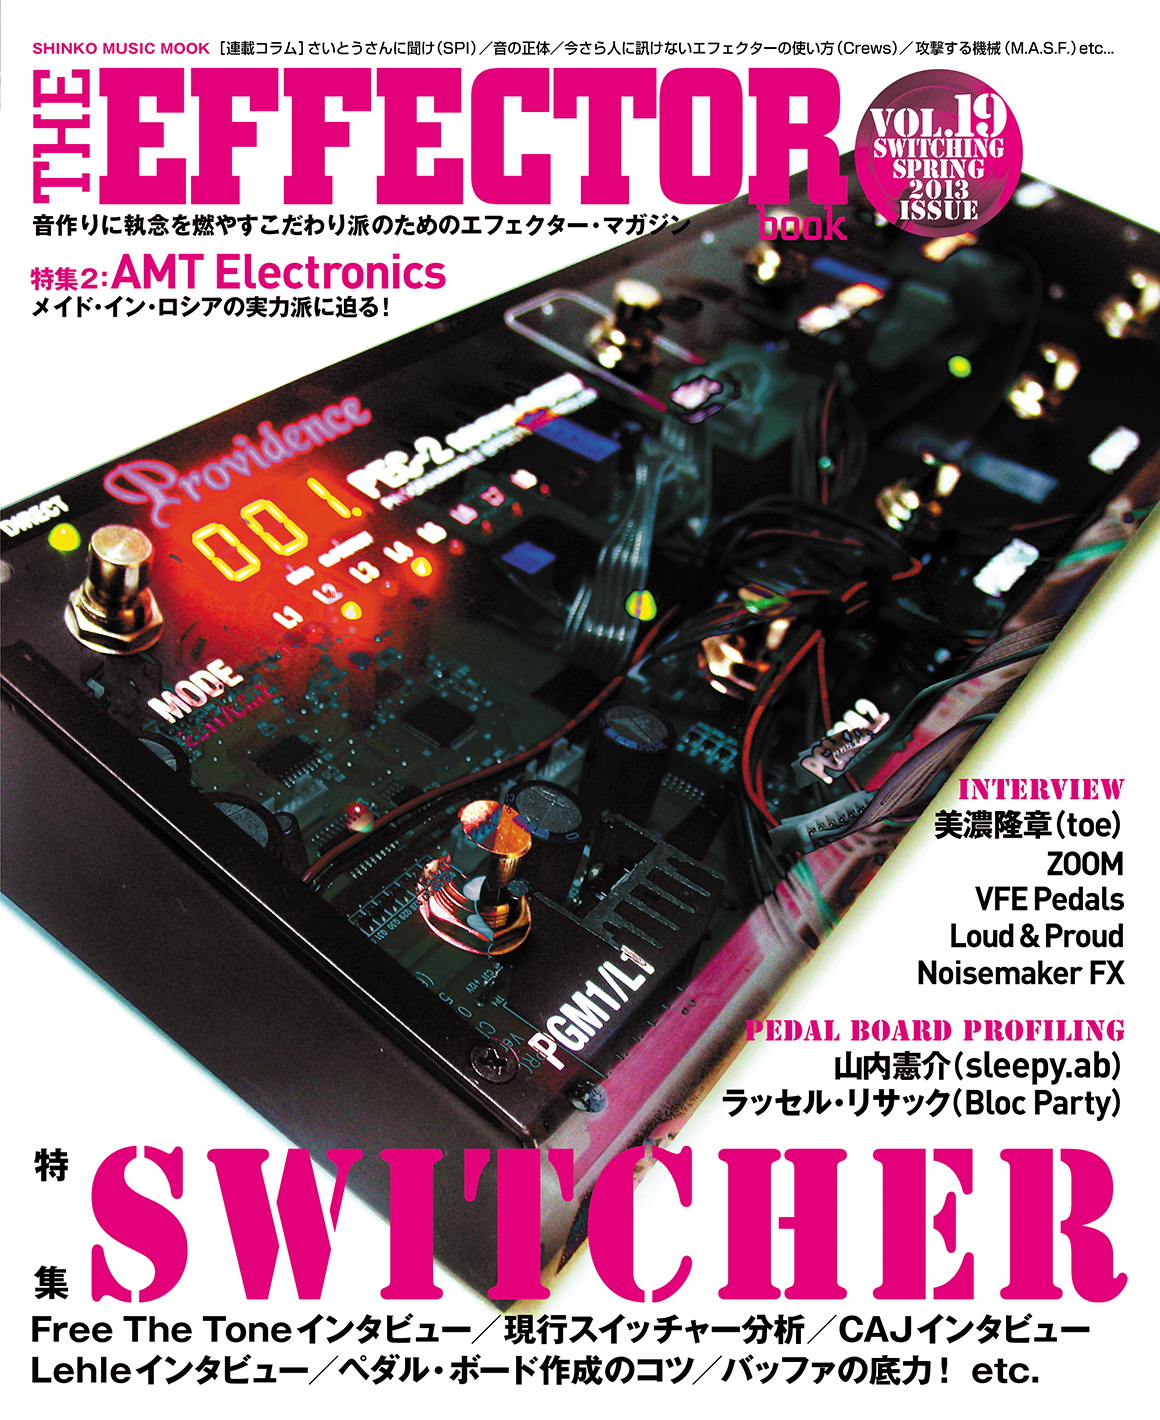 The EFFECTOR BOOK Vol.19